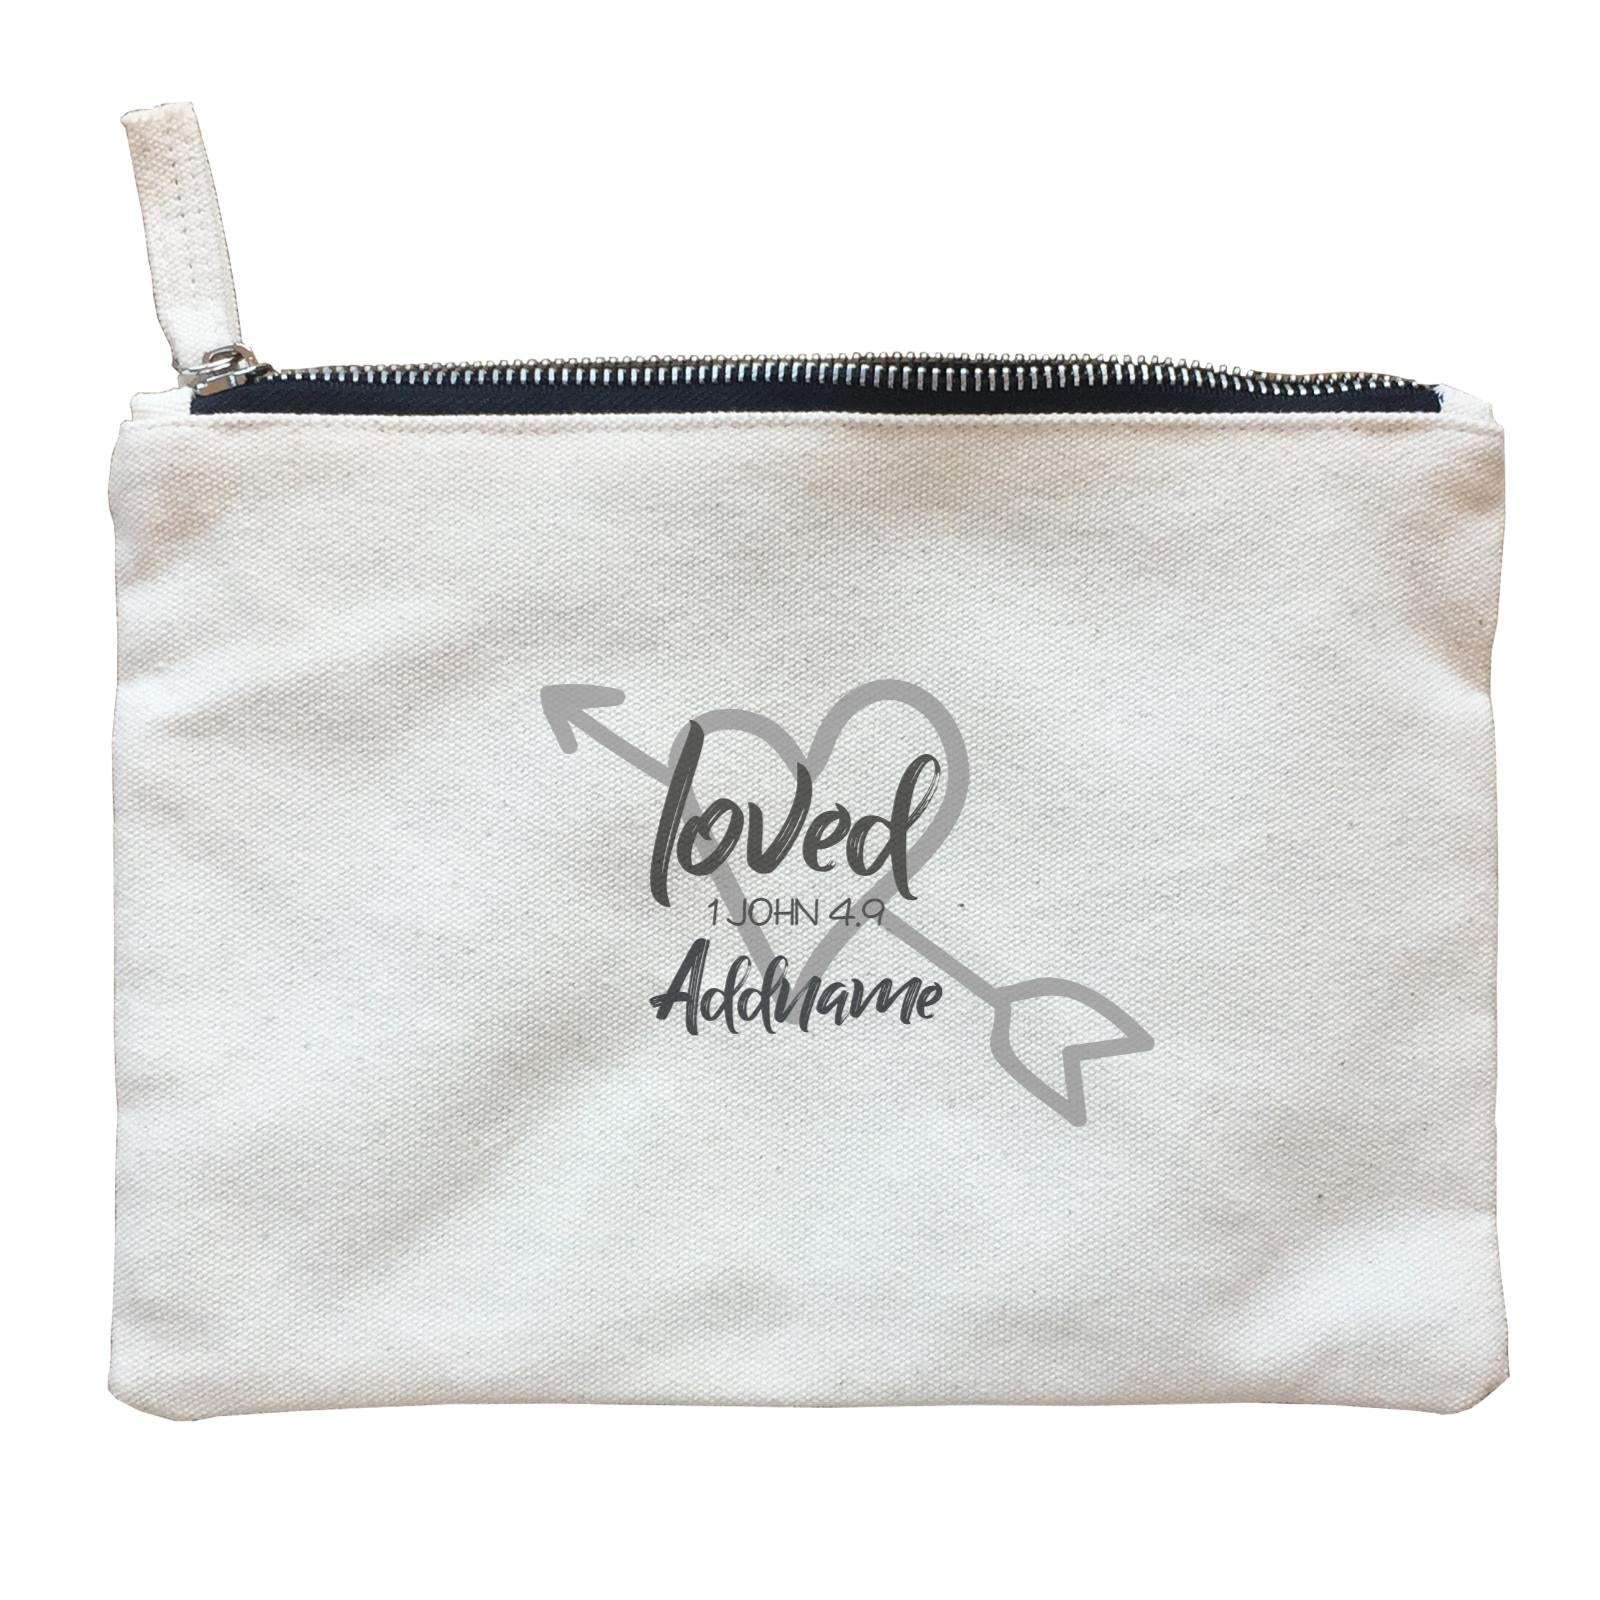 Loved Family Loved With Heart And Arrow 1 John 4.9 Addname Accessories Zipper Pouch